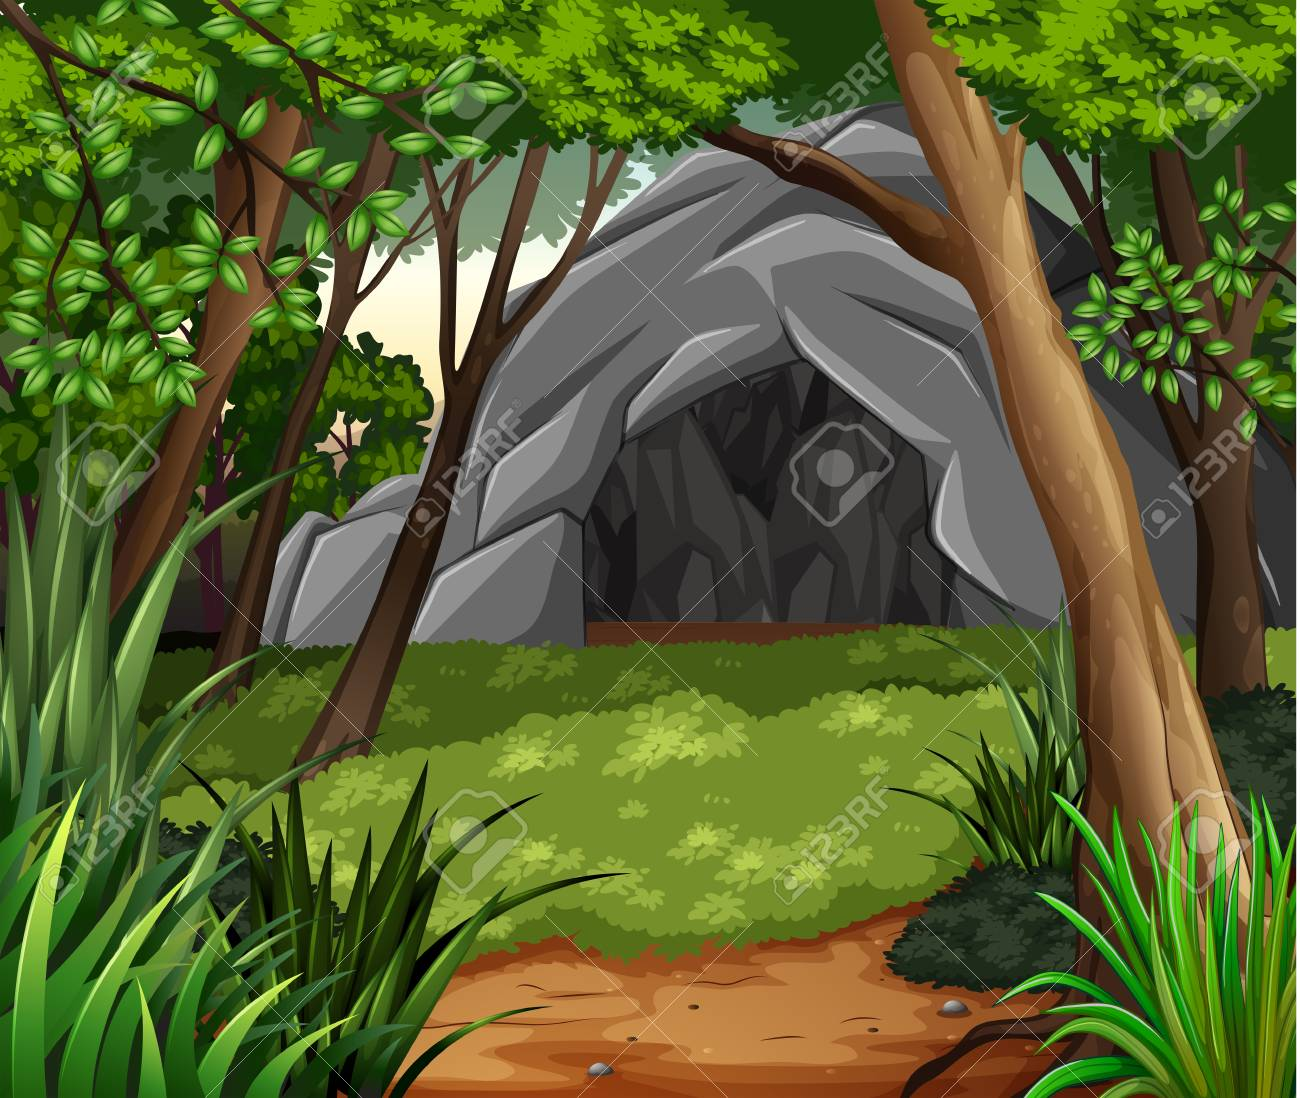 A Background scene with cave in forest illustration - 96117066